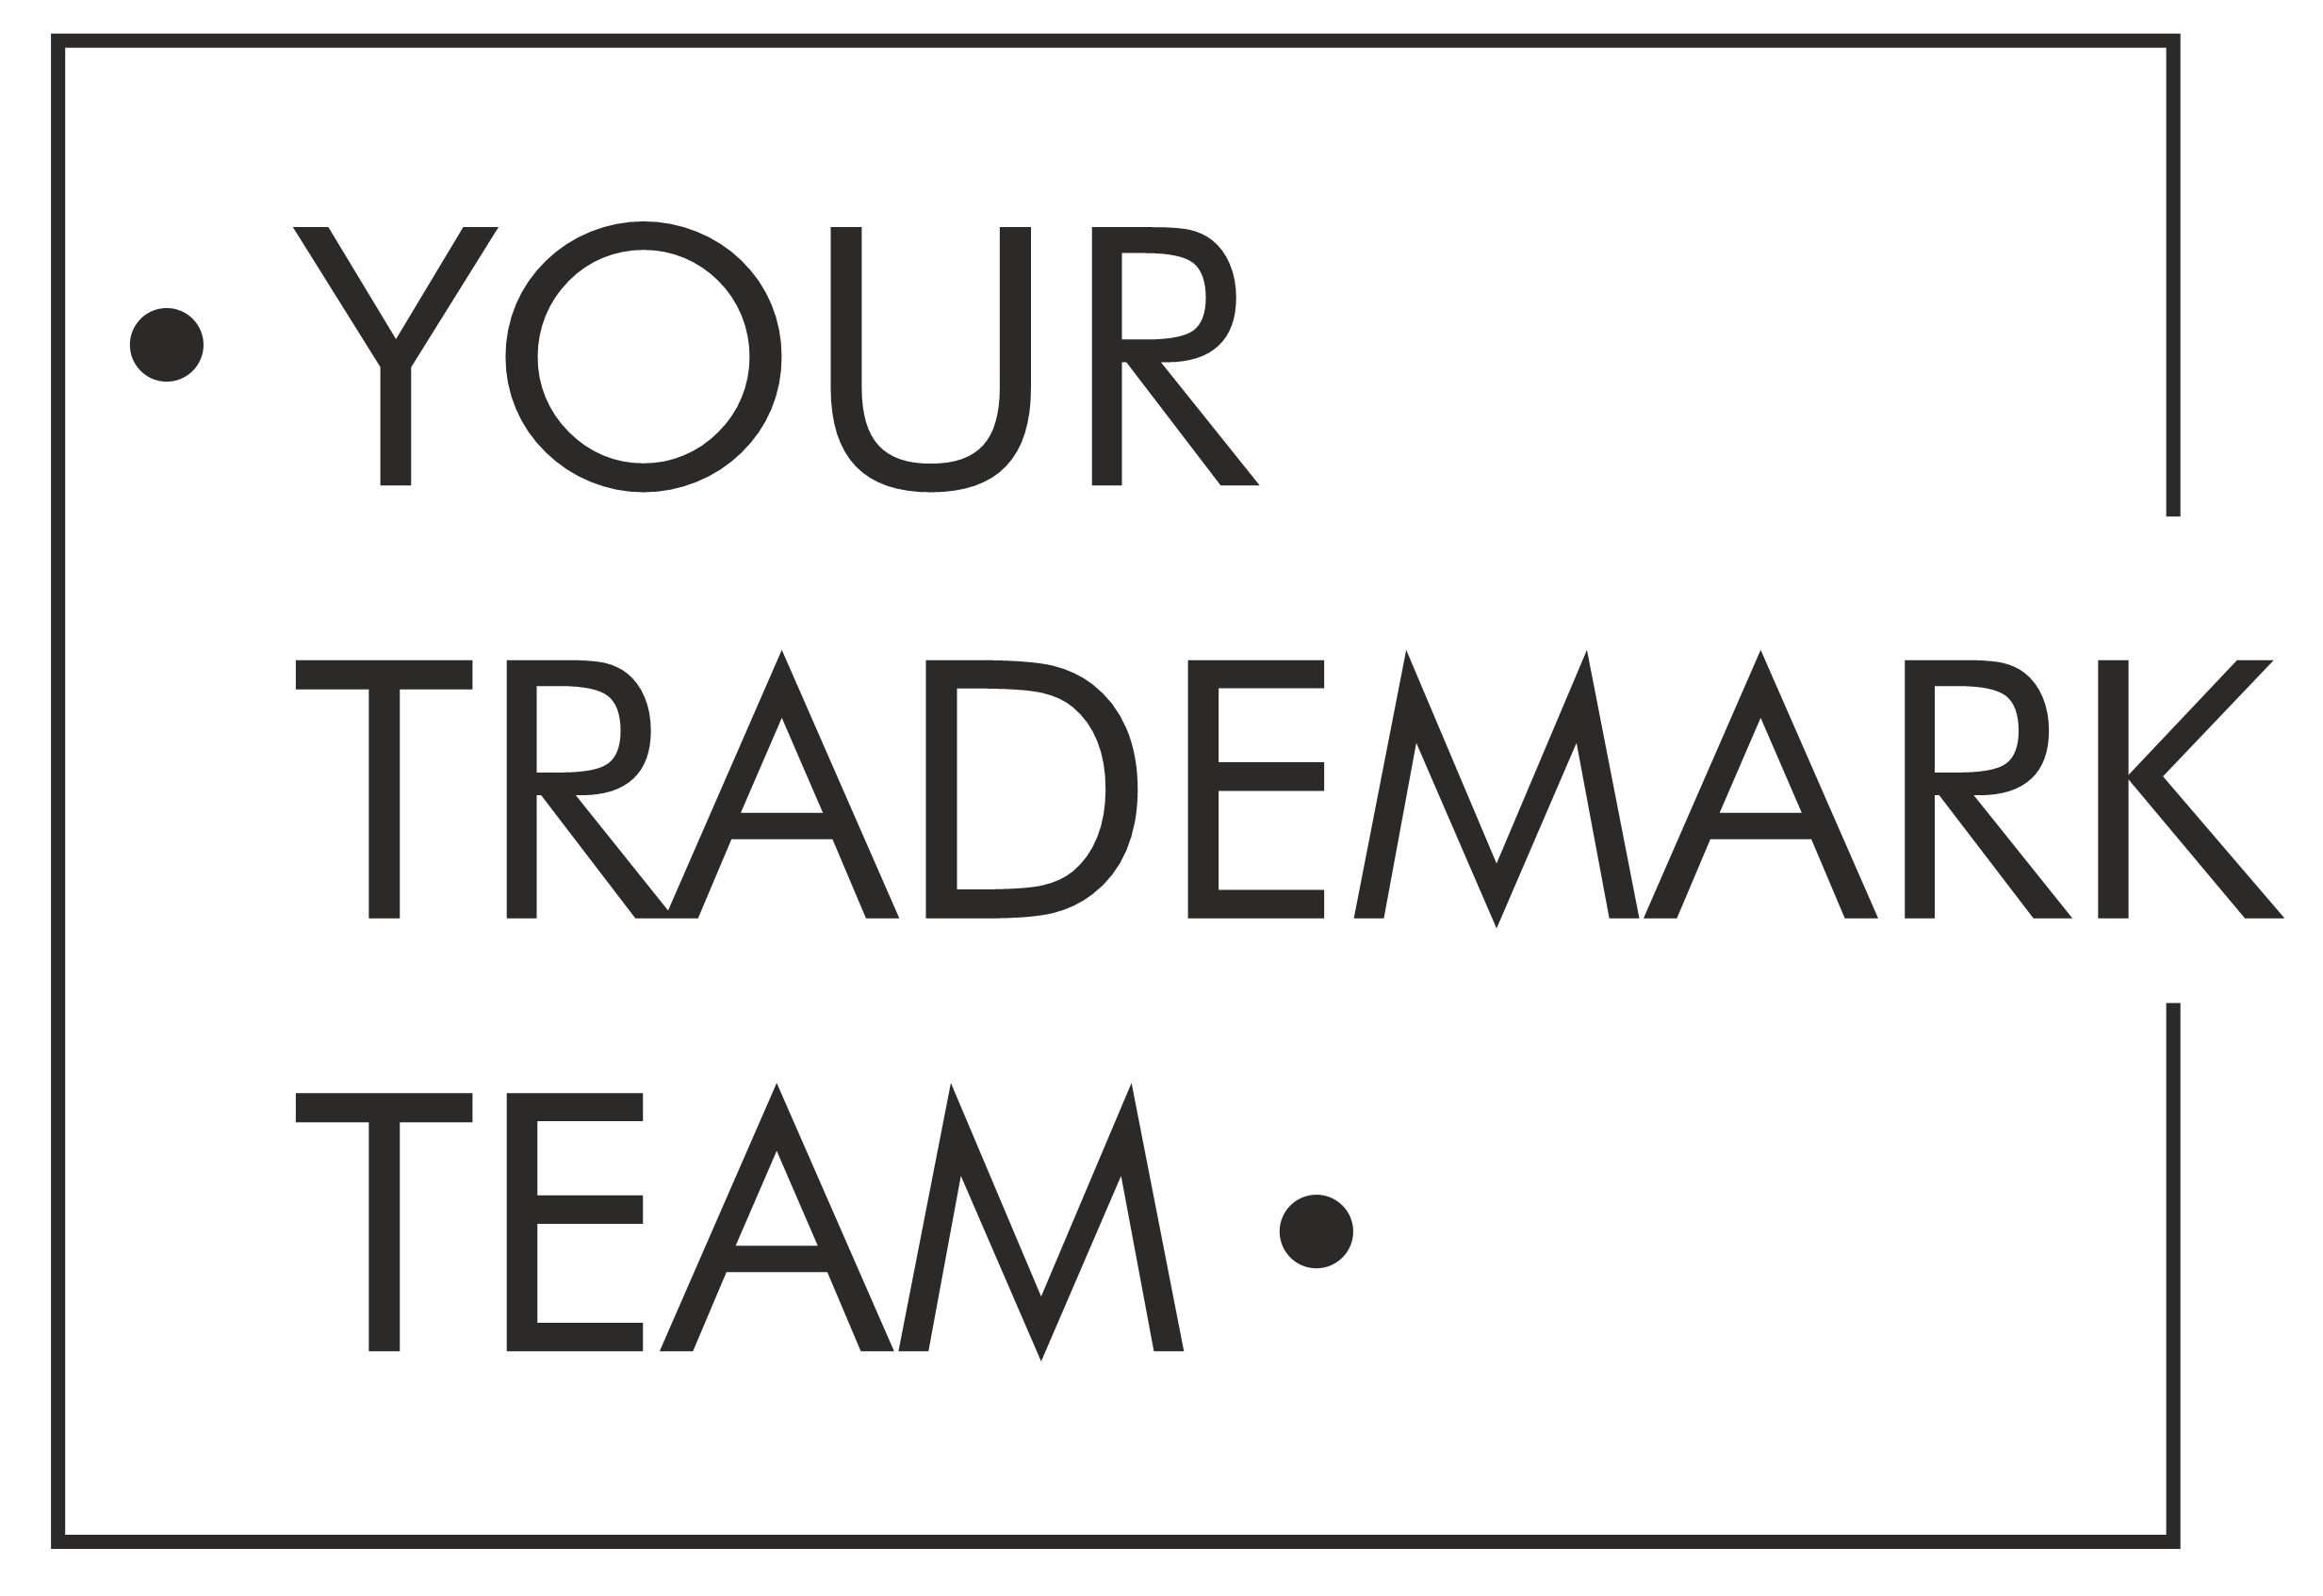 Your Trademark Team